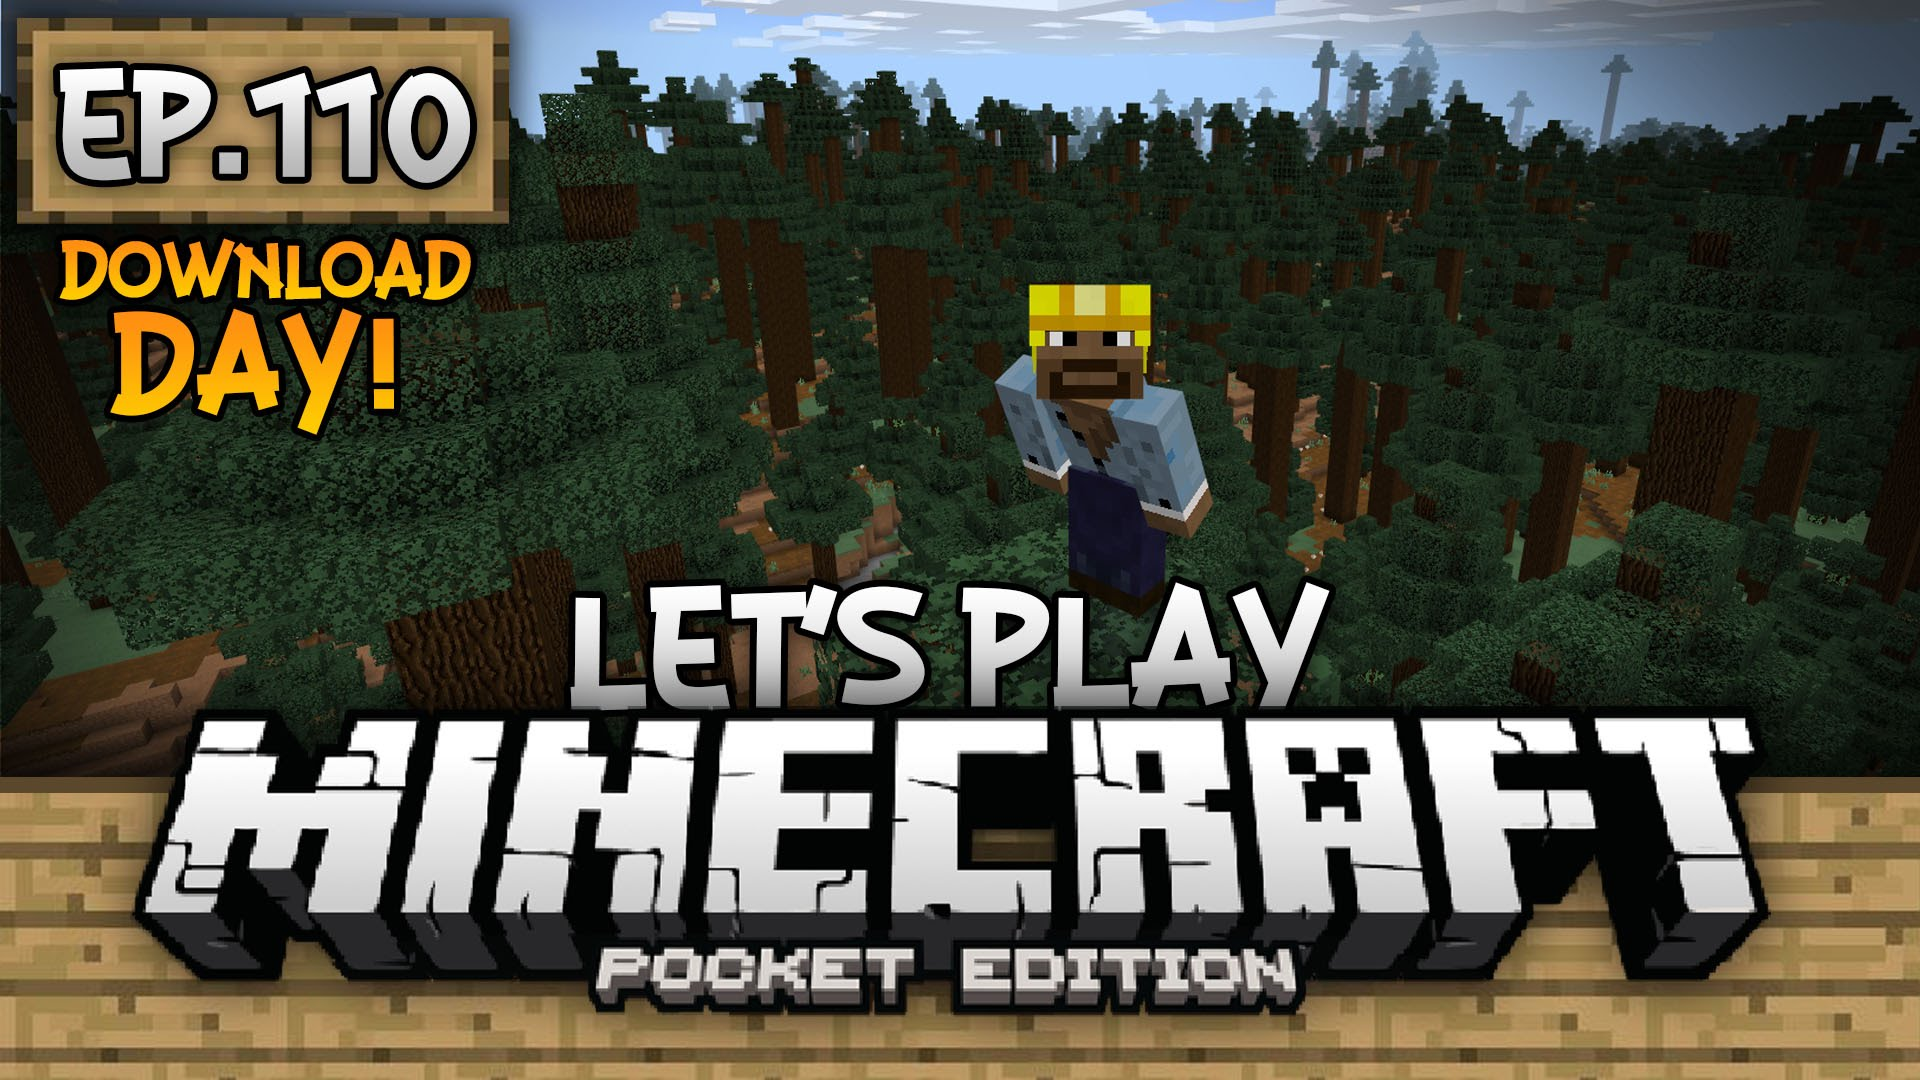 Minecraft: Pocket Edition - JFM's Lets play world download 110